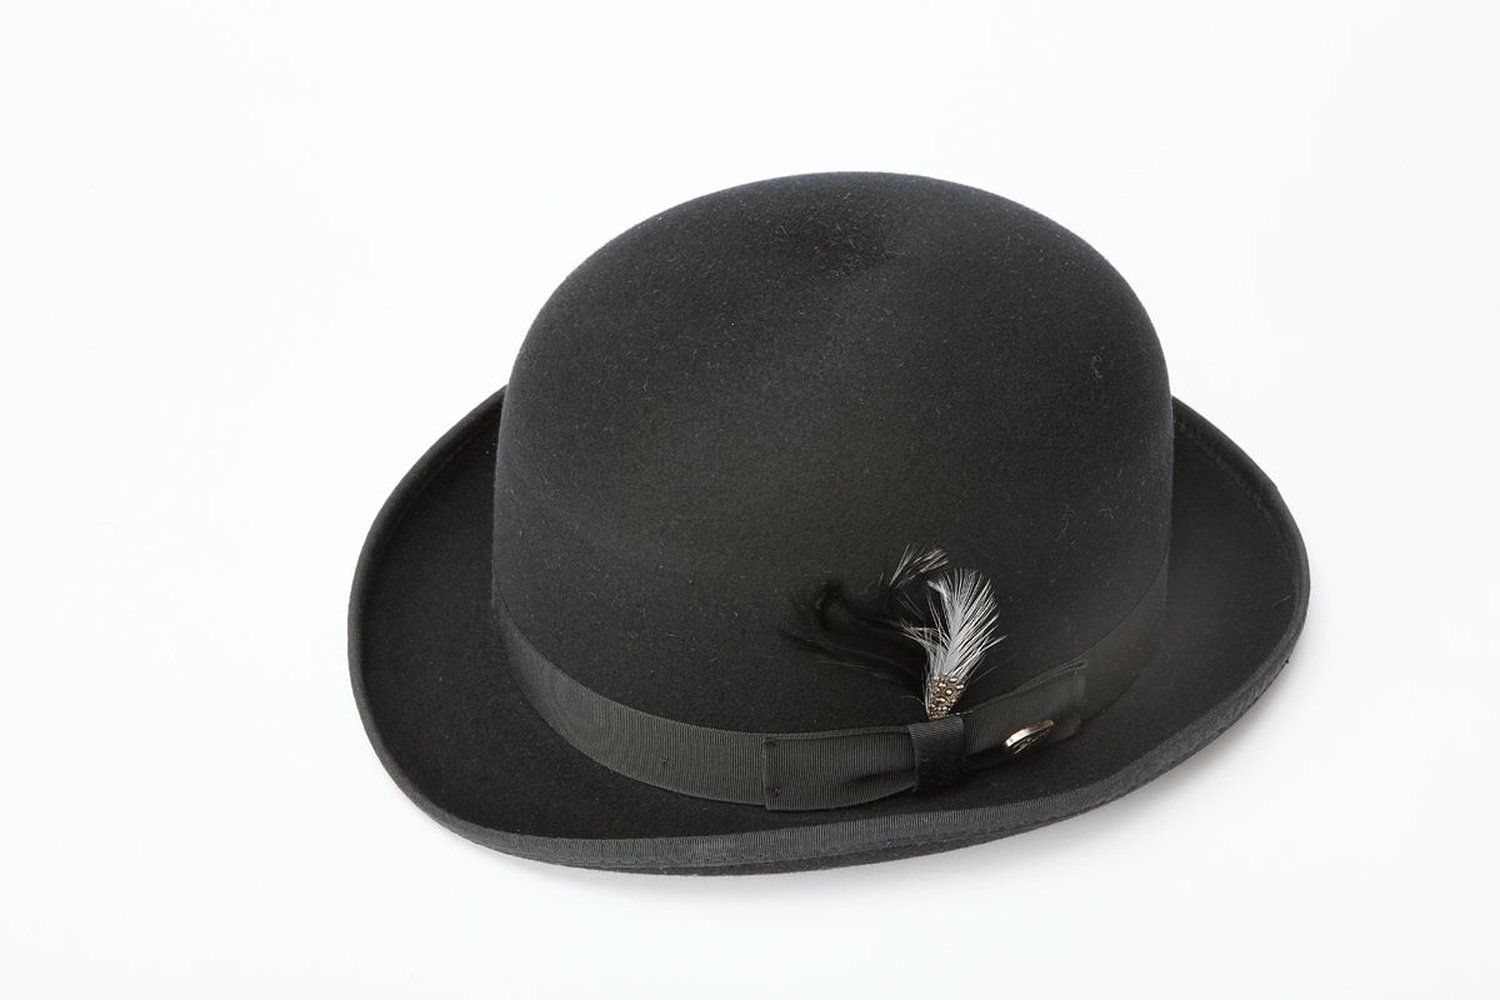 New Mens 100% Wool Black Derby Bowler Hat from Amazon